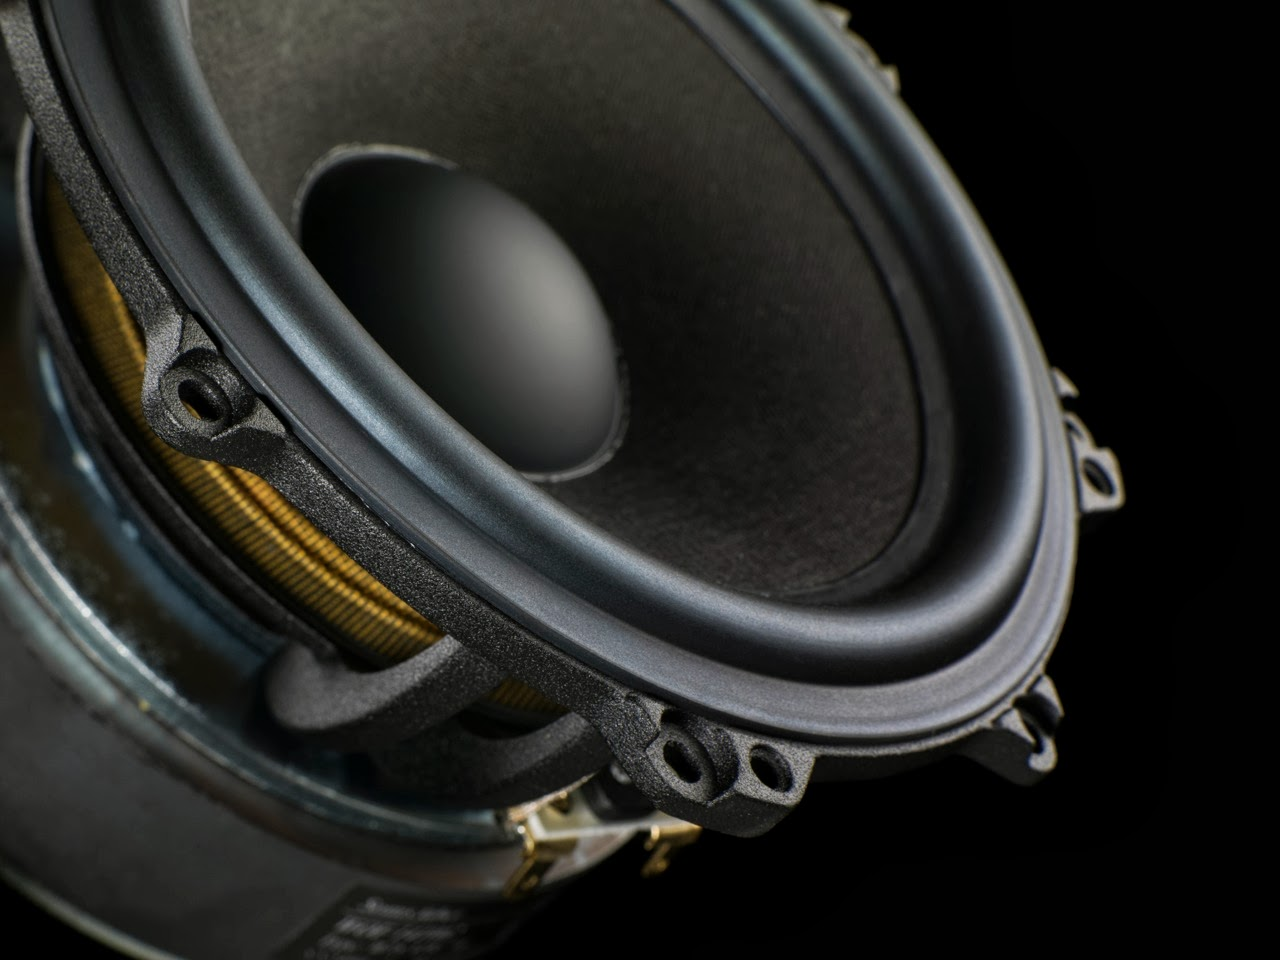 Exclusive Mono & Stereo interview about Sonus faber Olympica